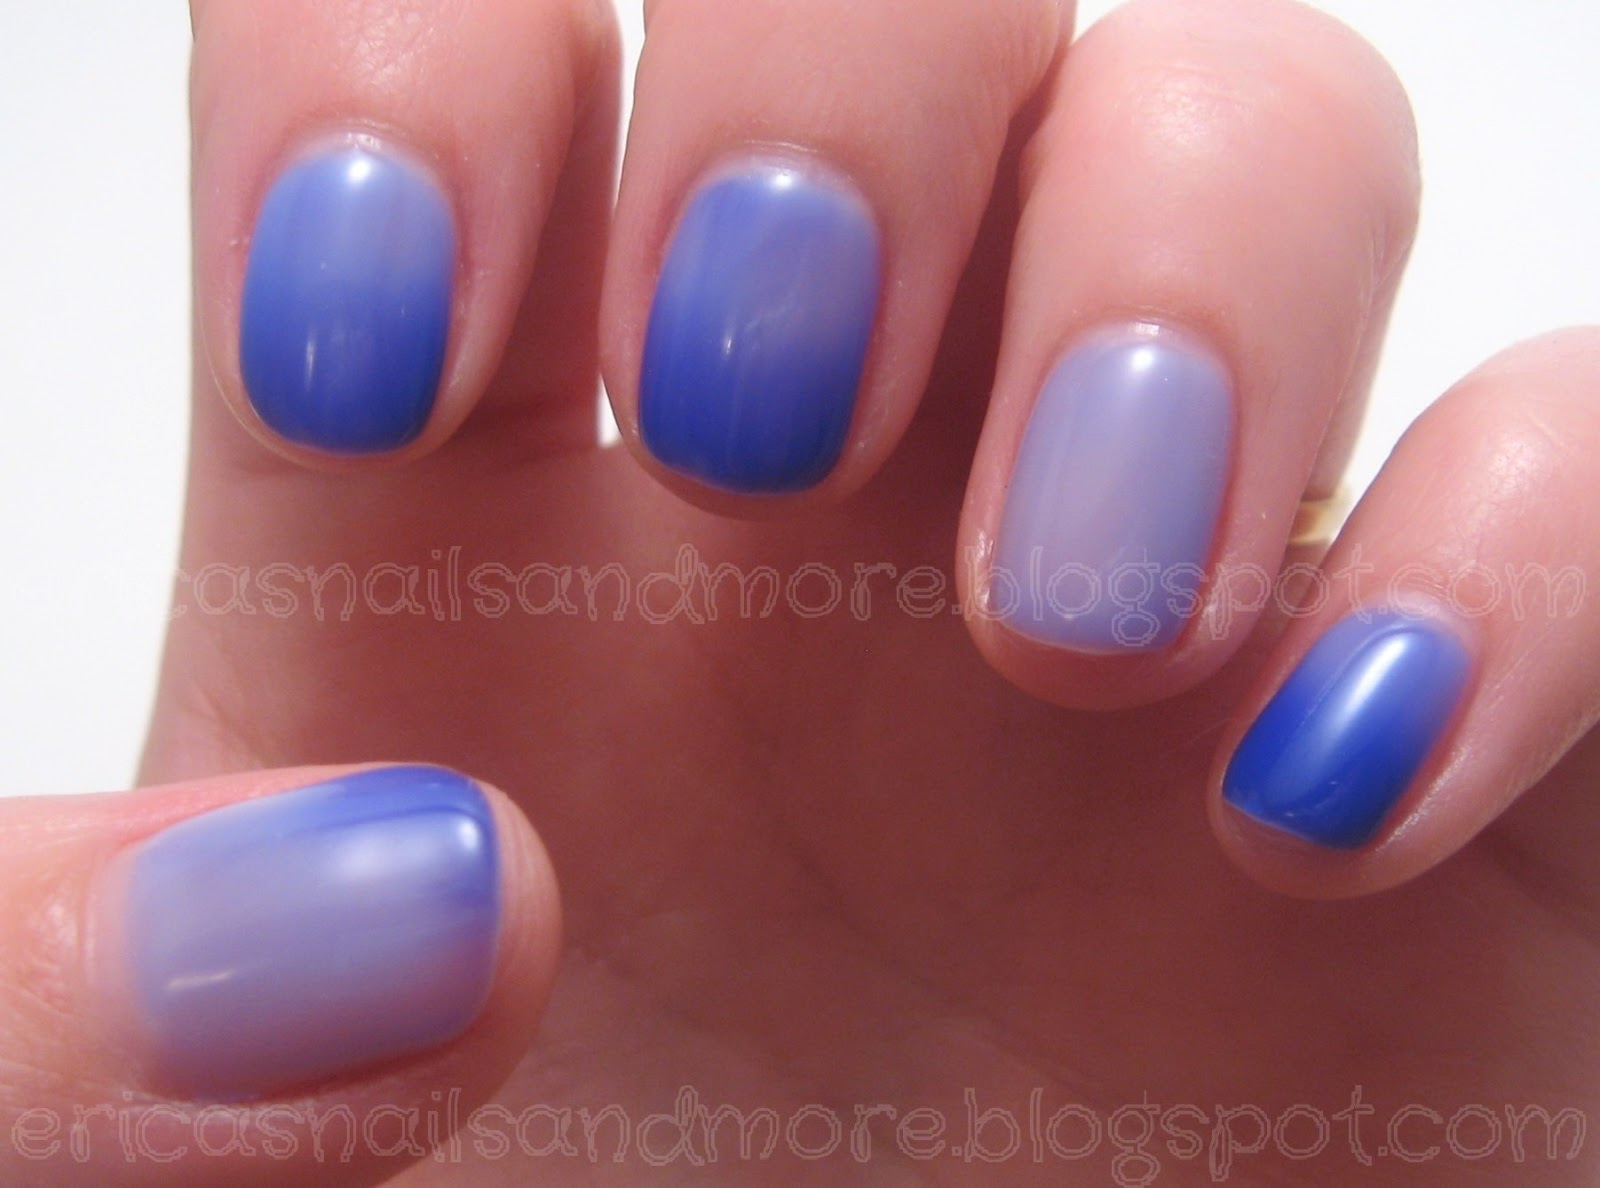 Erica\'s Nails and More: Gel II Rip Tide